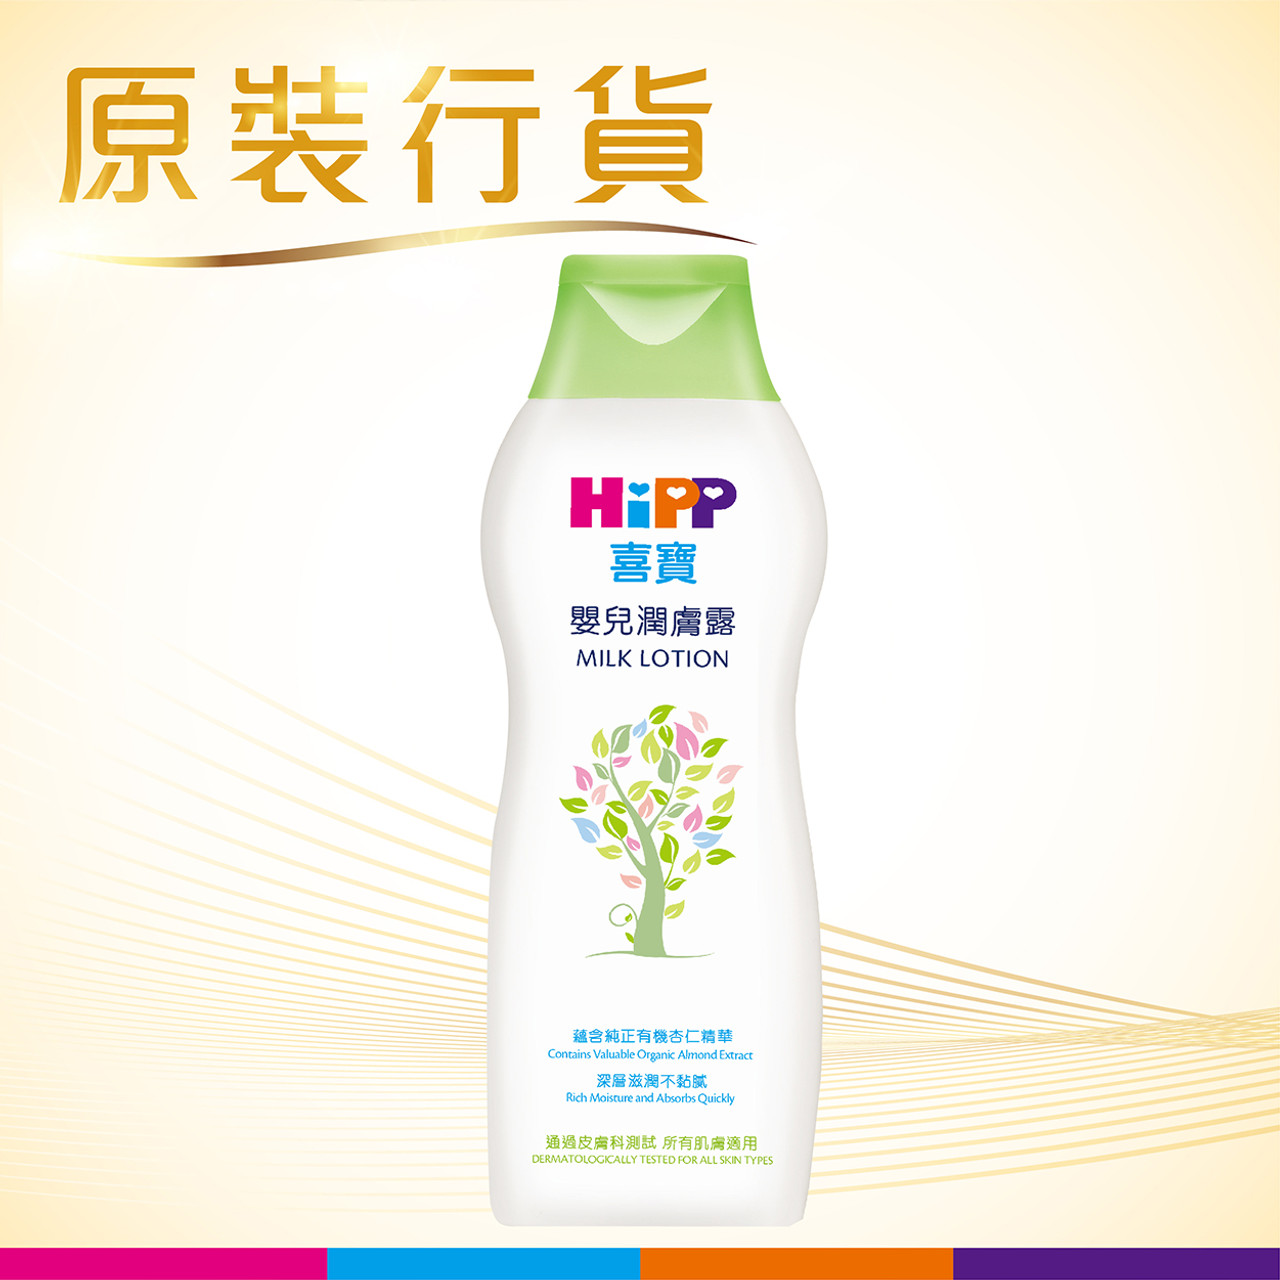 HiPP Milk Lotion 350ml (Photo for reference only) | HiPP 喜寶嬰兒潤膚露 350毫升 (圖片只供參考)